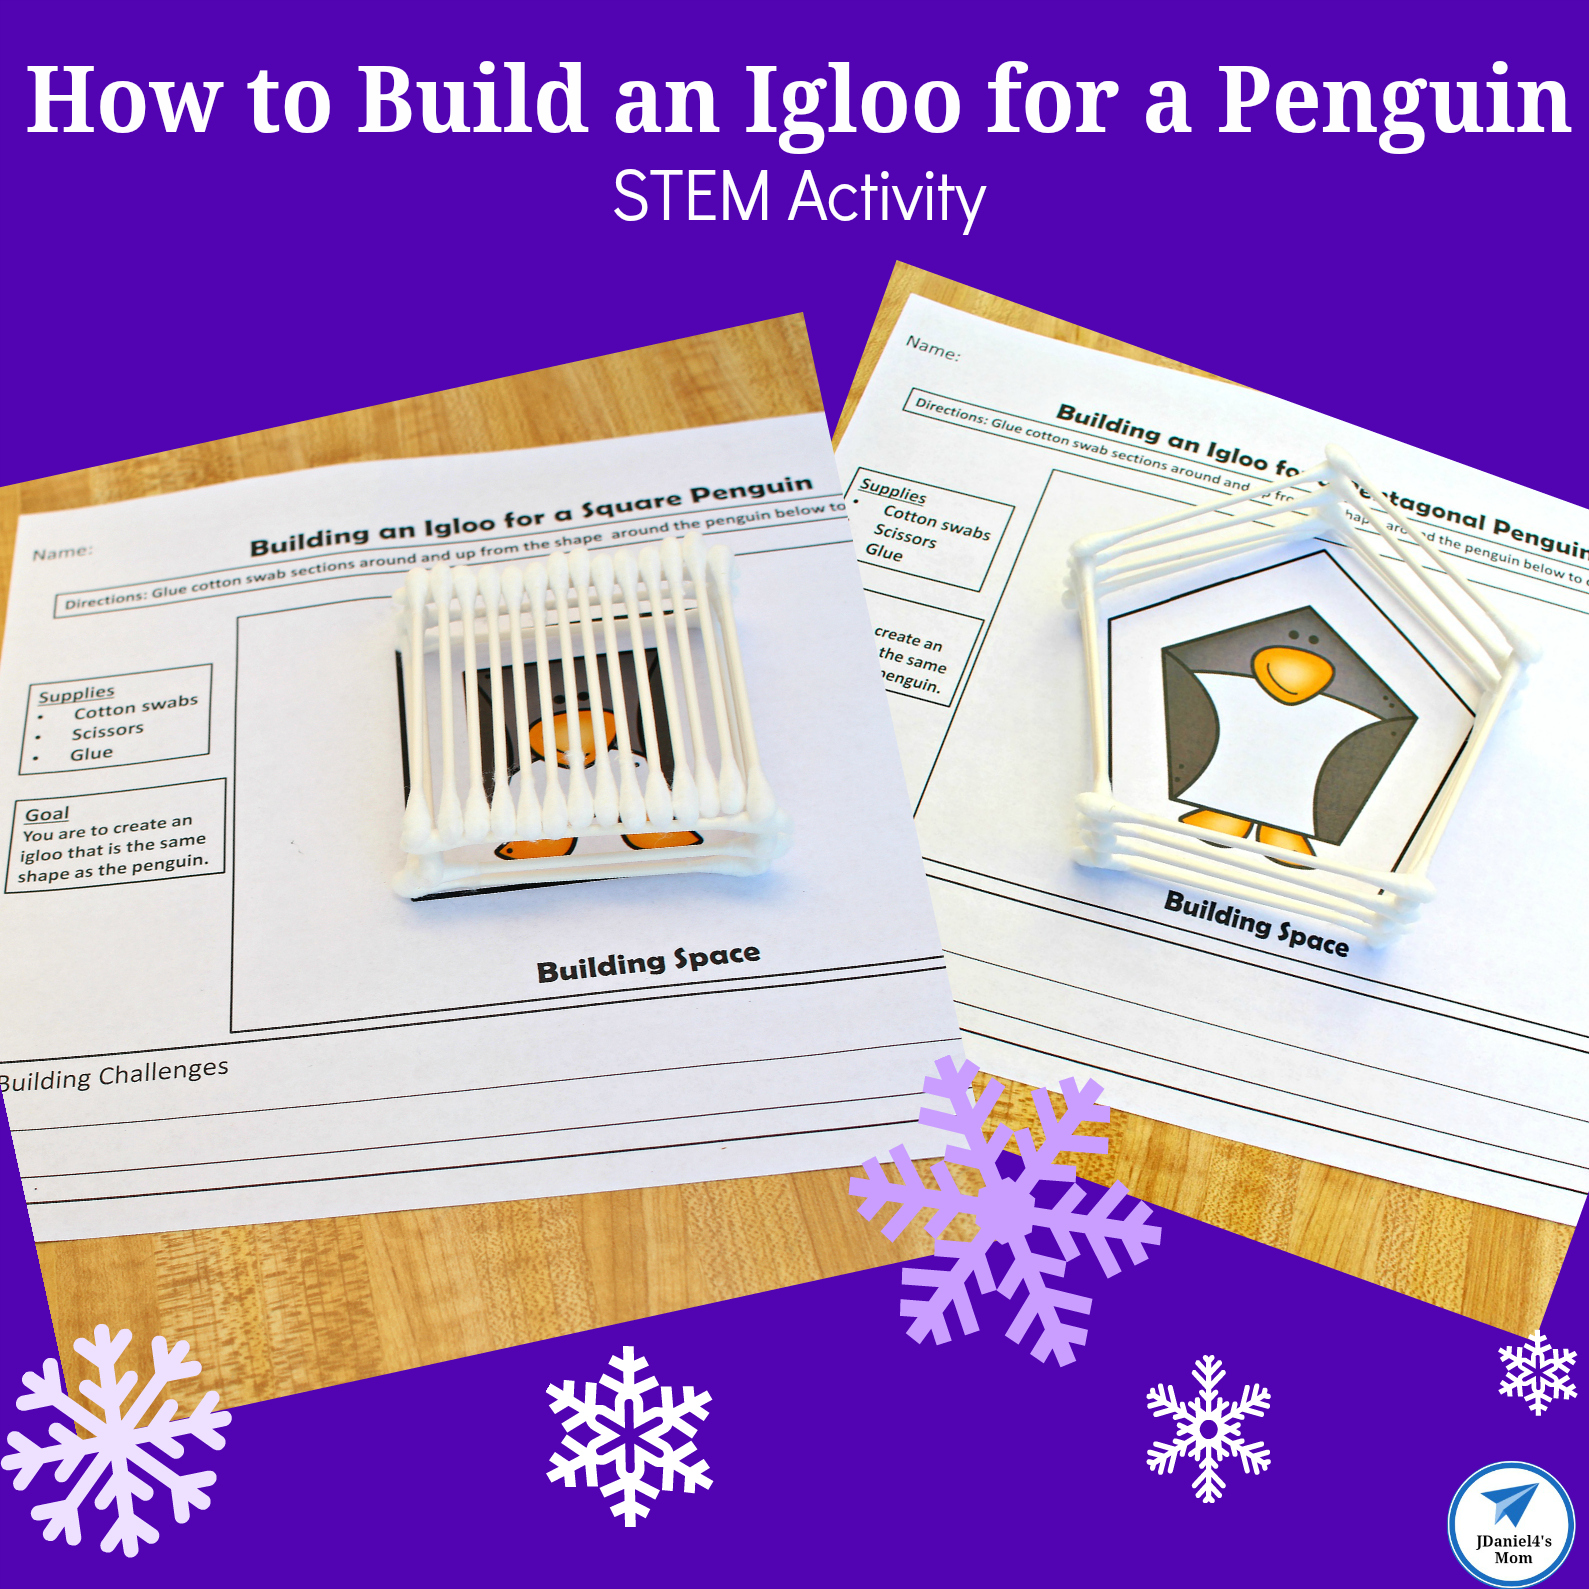 How To Build An Igloo For A Penguin Stem Activity Jdaniel4s Mom